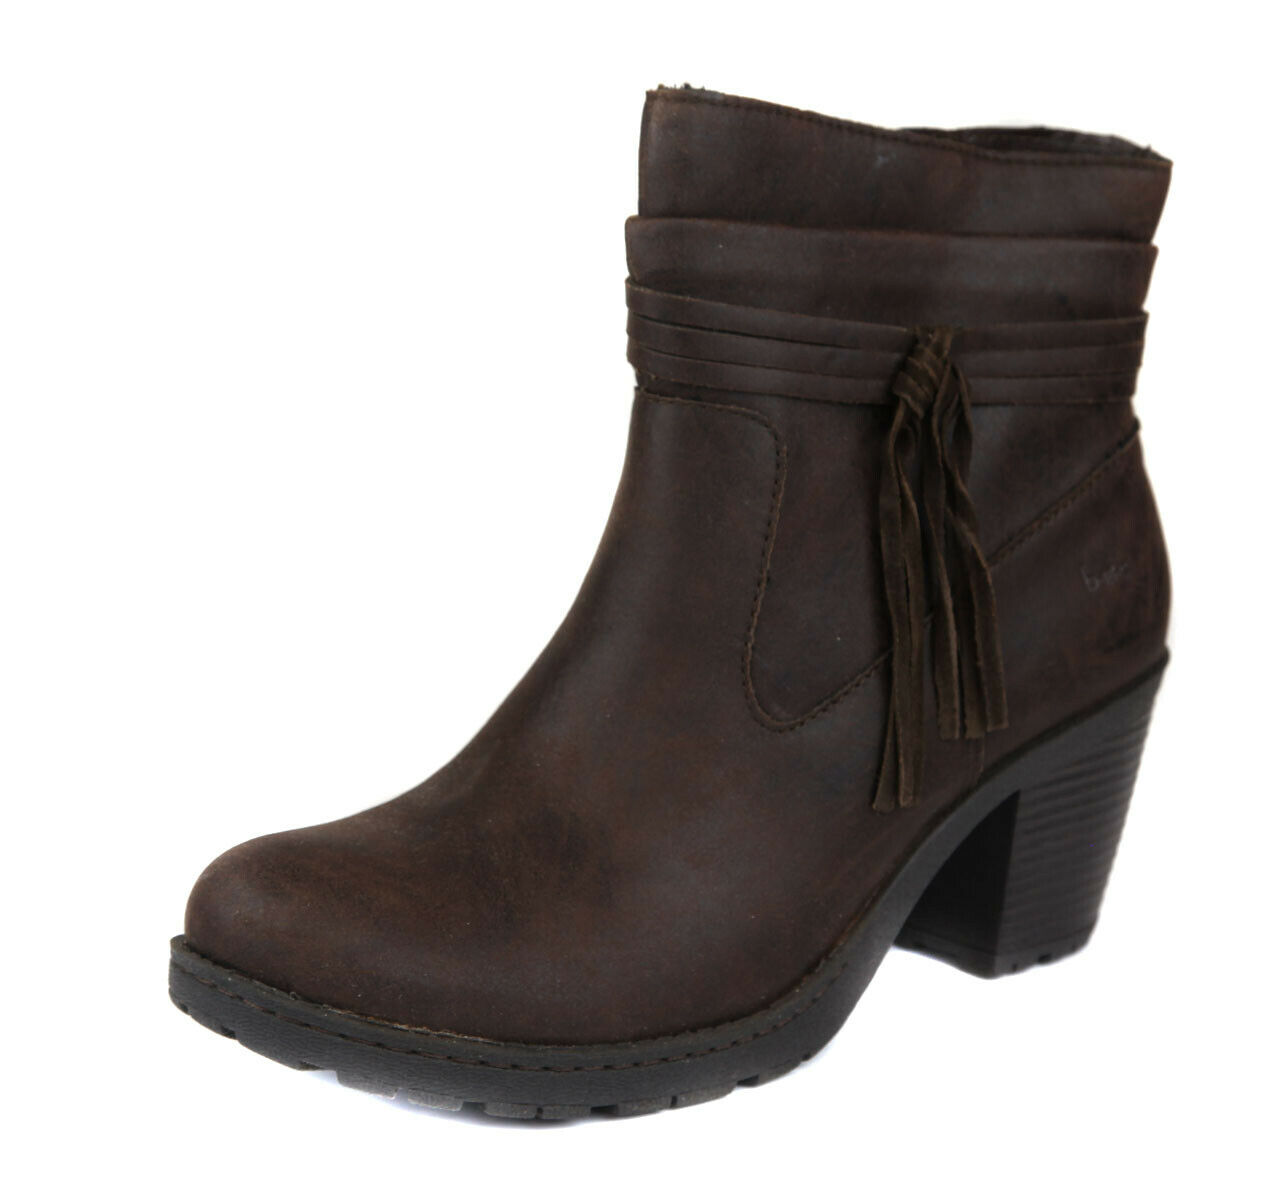 Born Women's Brown Alicudi Tassle Ankle Bootie Boot Boot Boot shoes Ret  99 New d7554c